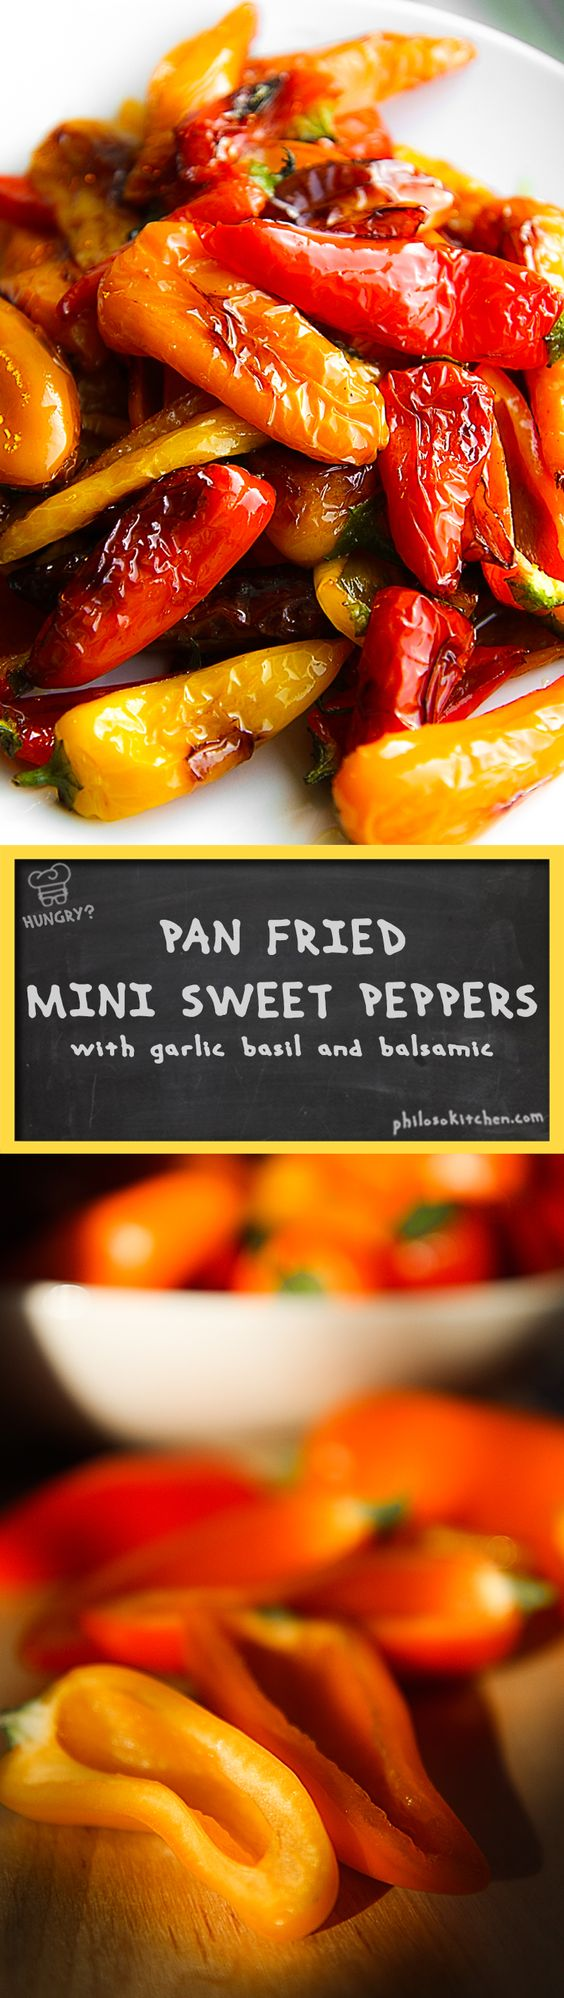 PAN FRIED SWEET MINI PEPPERS with basil leaves and balsamic vinegar I prepared the sweet mini peppers with basil, garlic and balsamic vinegar, then I let them rest covered overnight in the fridge. The pan fried sweet mini peppers are perfect to be tasted with bread crostini, but next to roasted sausages or with a delicious slice of aged Pecorino cheese and cured meats as well. - vegetarian recipe side appetizer salad